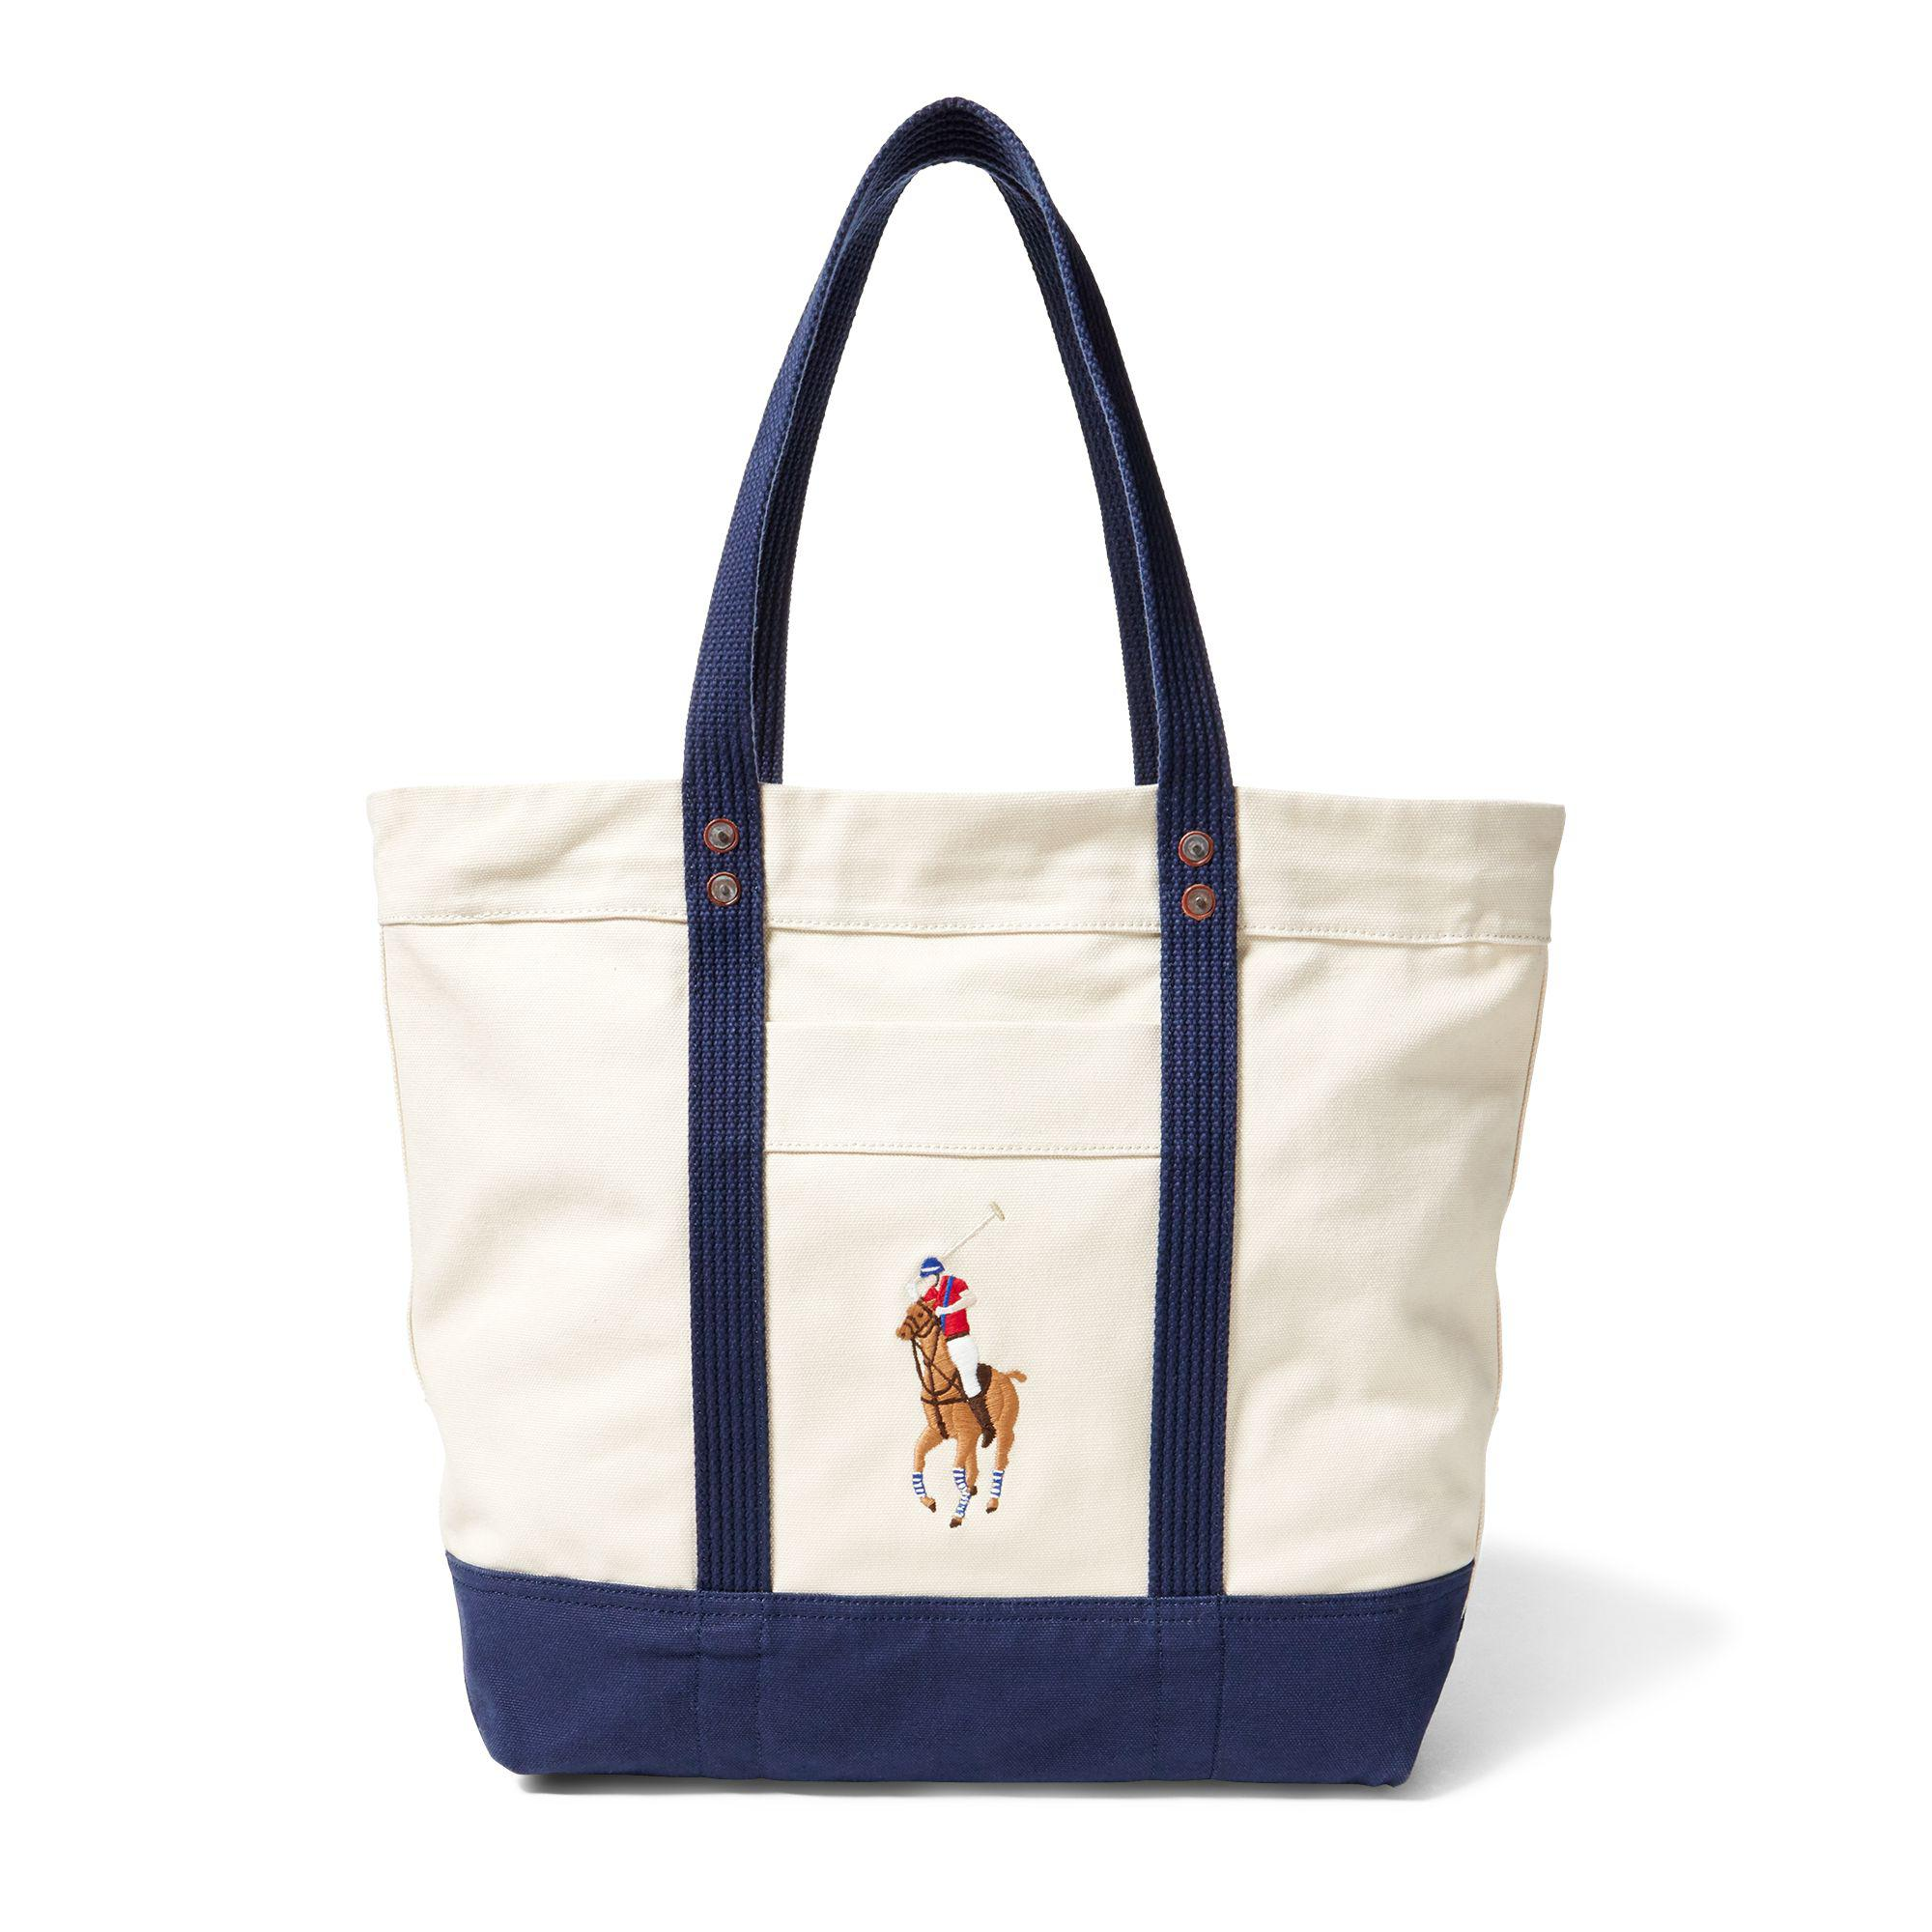 d25d196eb8 Lyst - Polo Ralph Lauren Canvas Big Pony Tote in Blue for Men